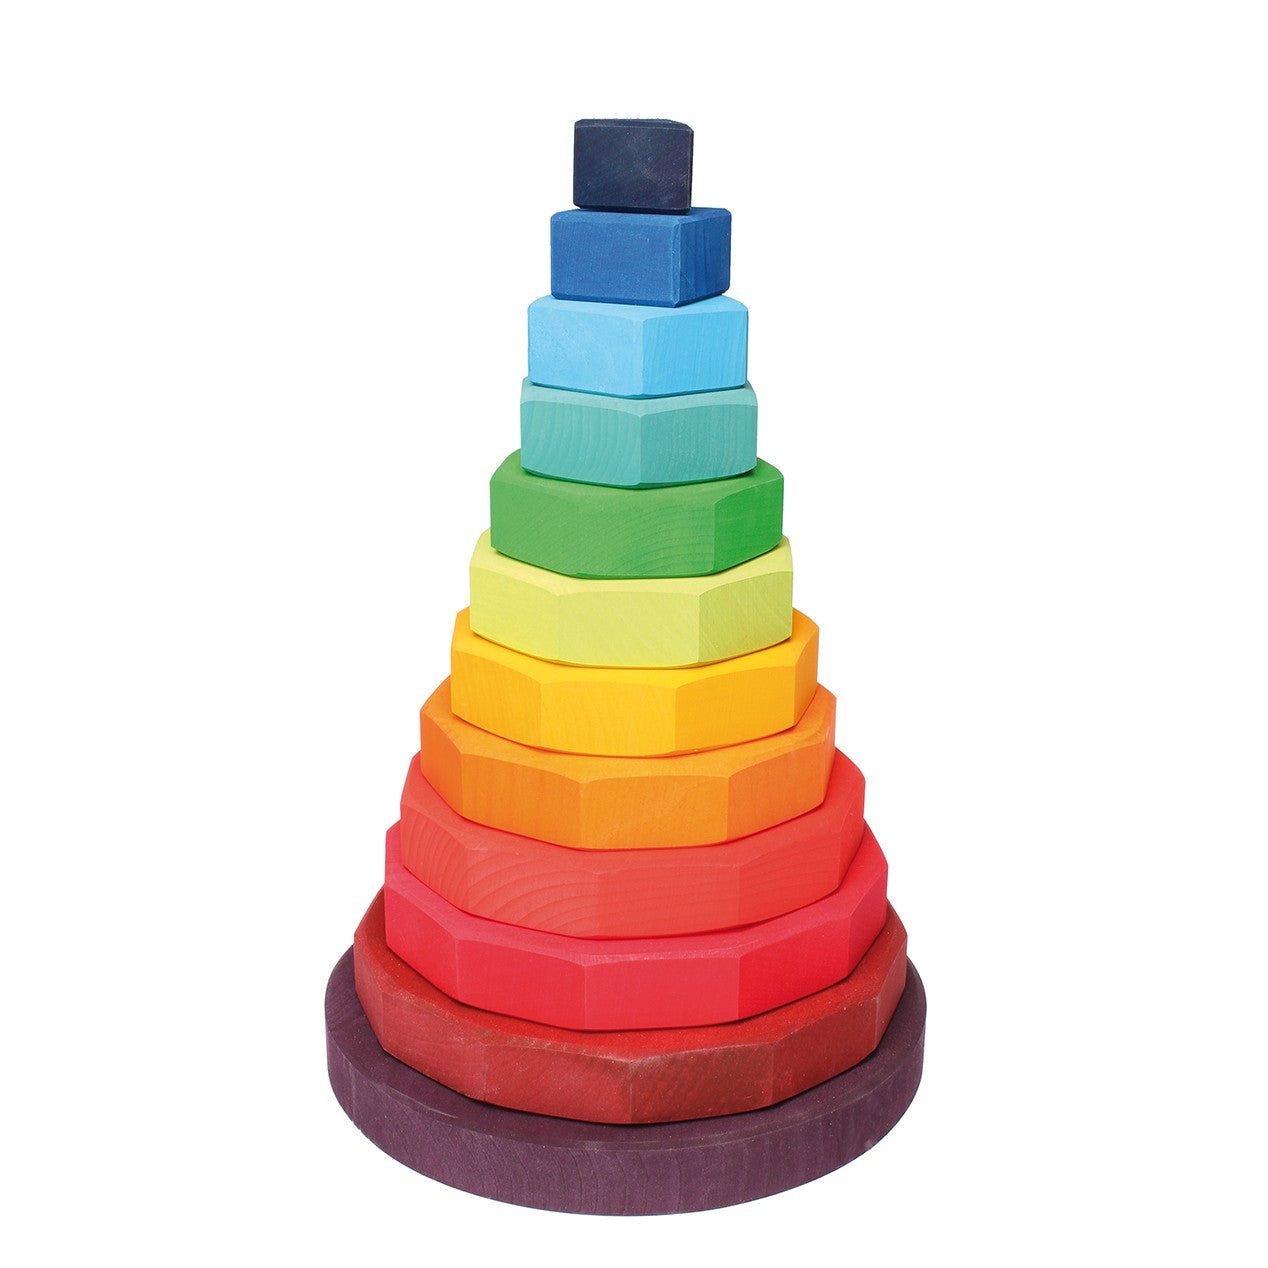 Grimm's Geometrical Stacking Tower Large